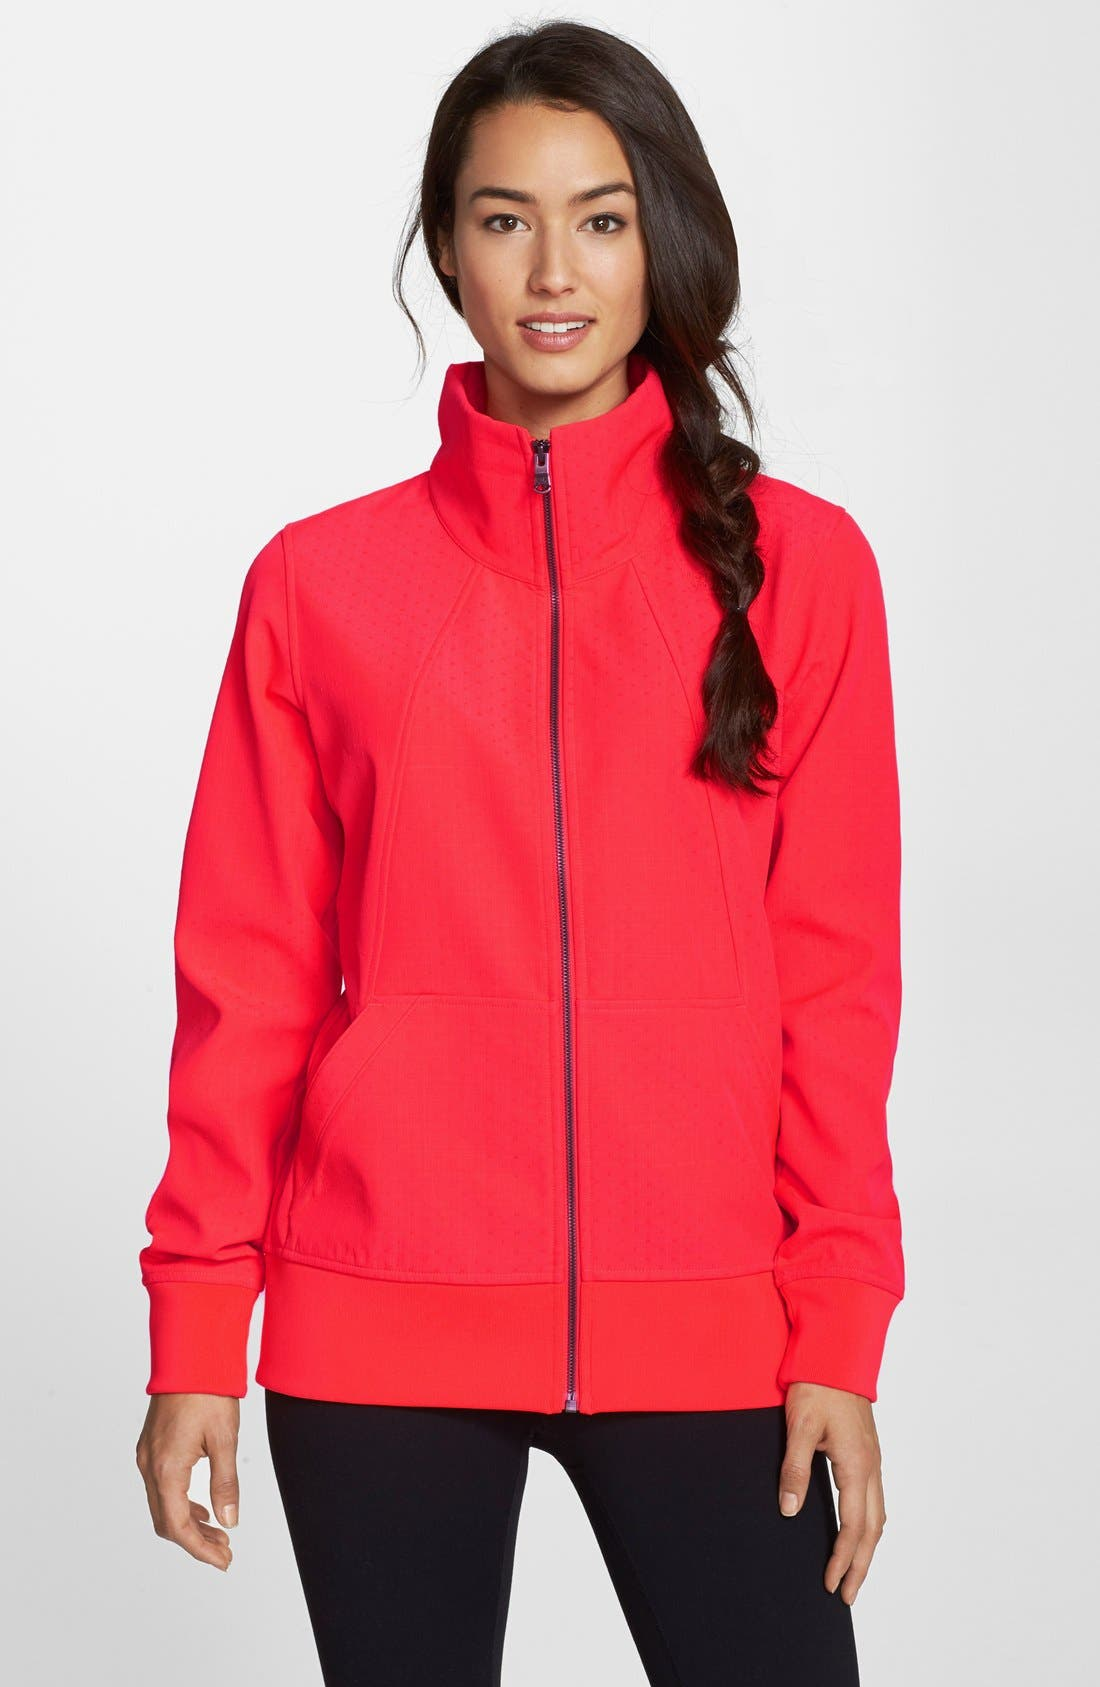 Alternate Image 1 Selected - The North Face 'Jessie' Jacket